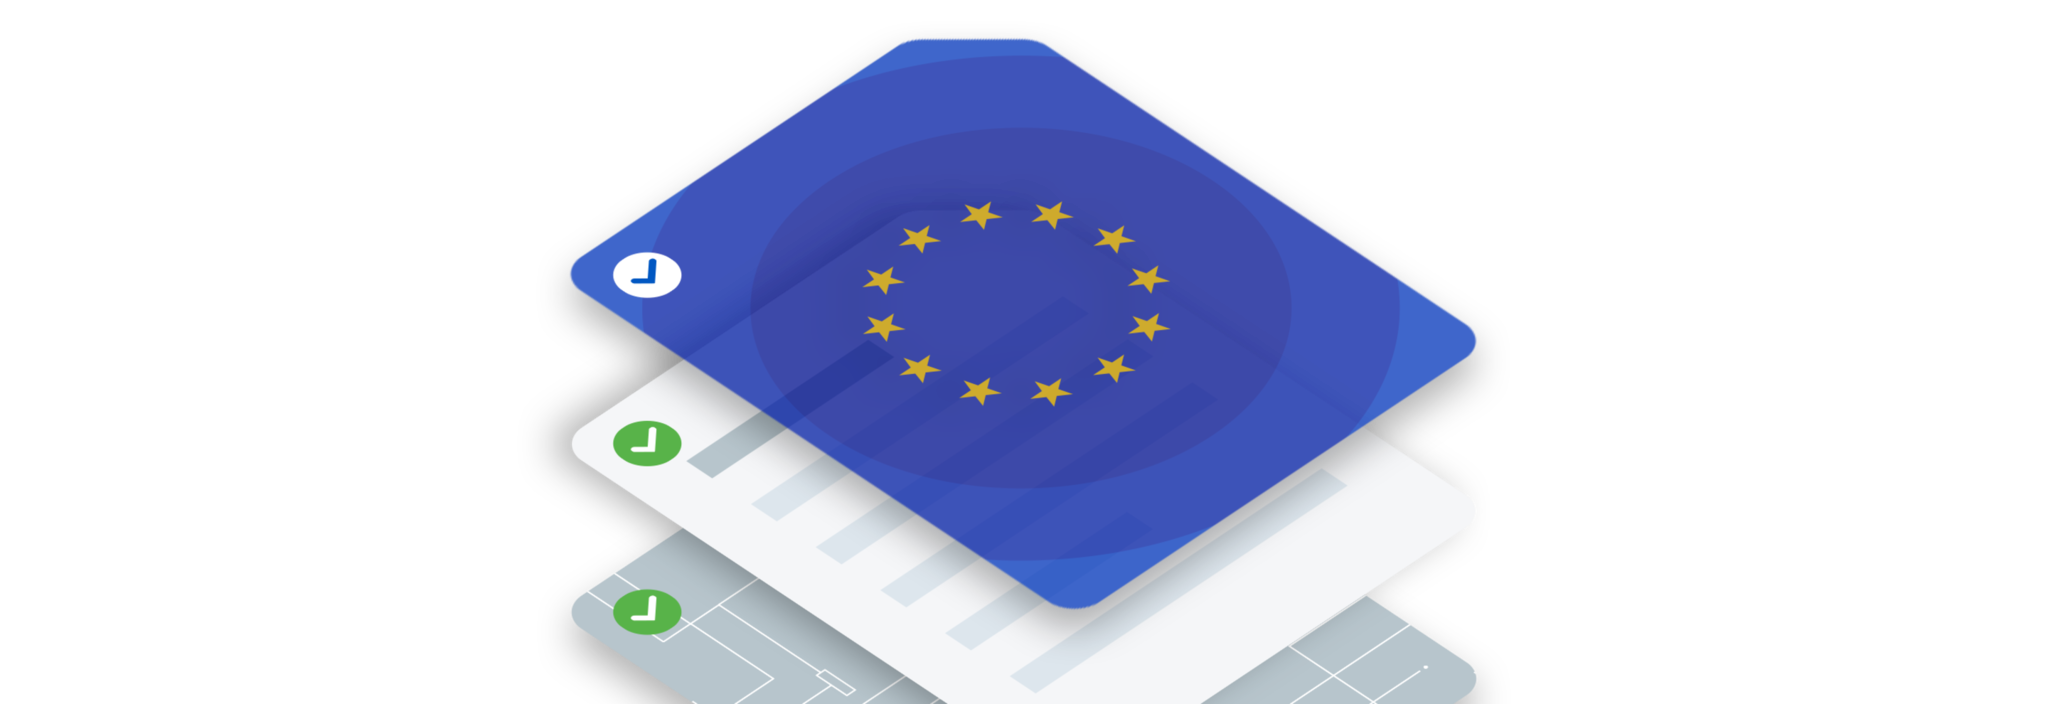 Privacy Protection | SignRequest and the GDPR Compliancy